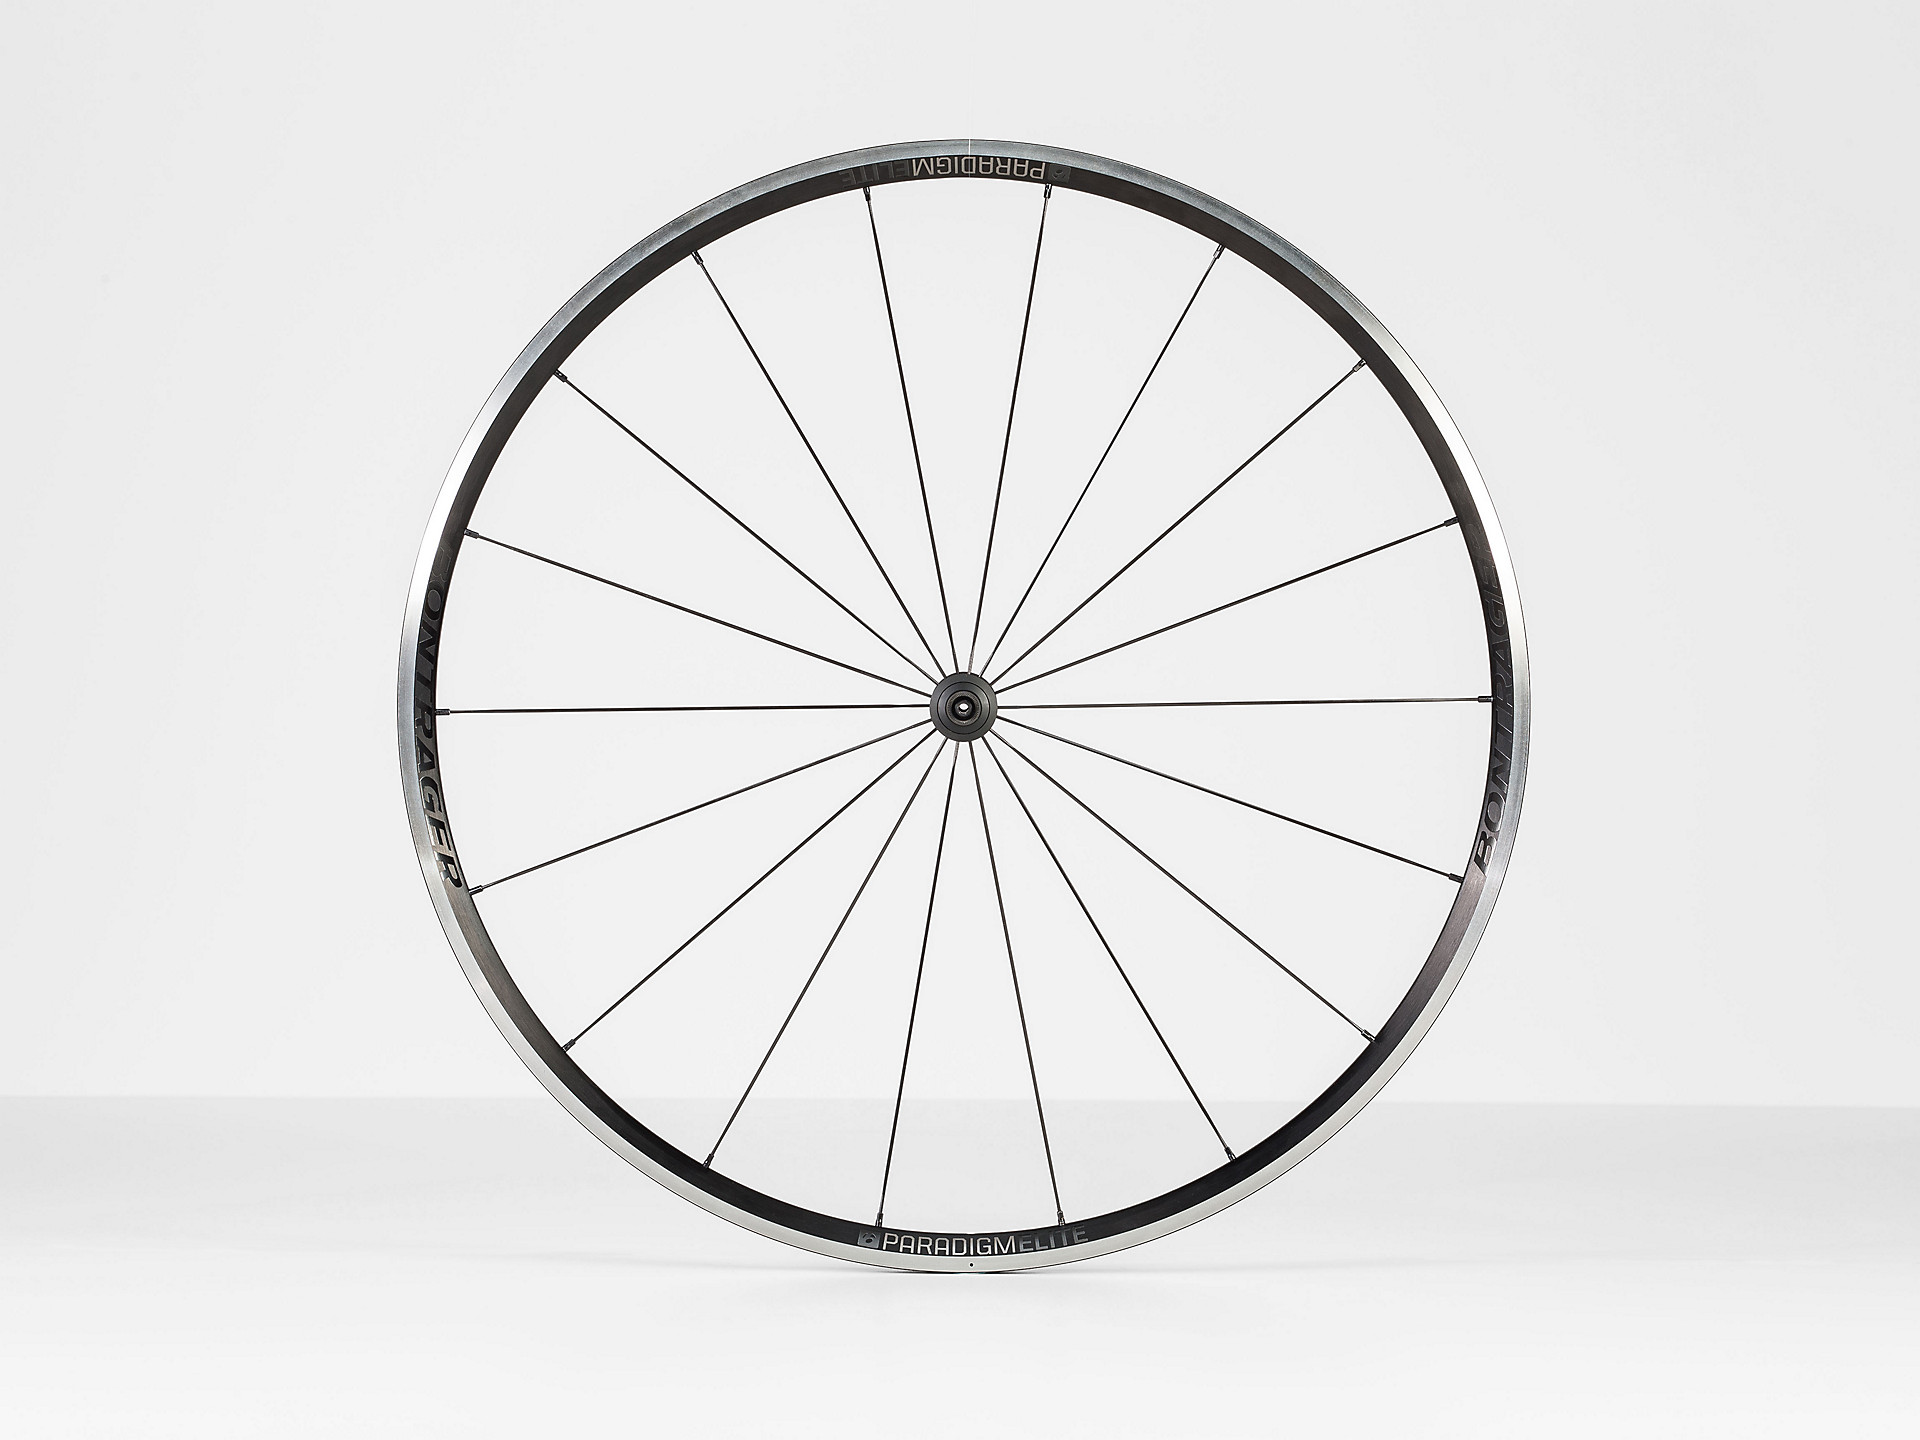 3278a3a95e7 Bontrager Paradigm Elite TLR Road Wheel | Trek Bikes